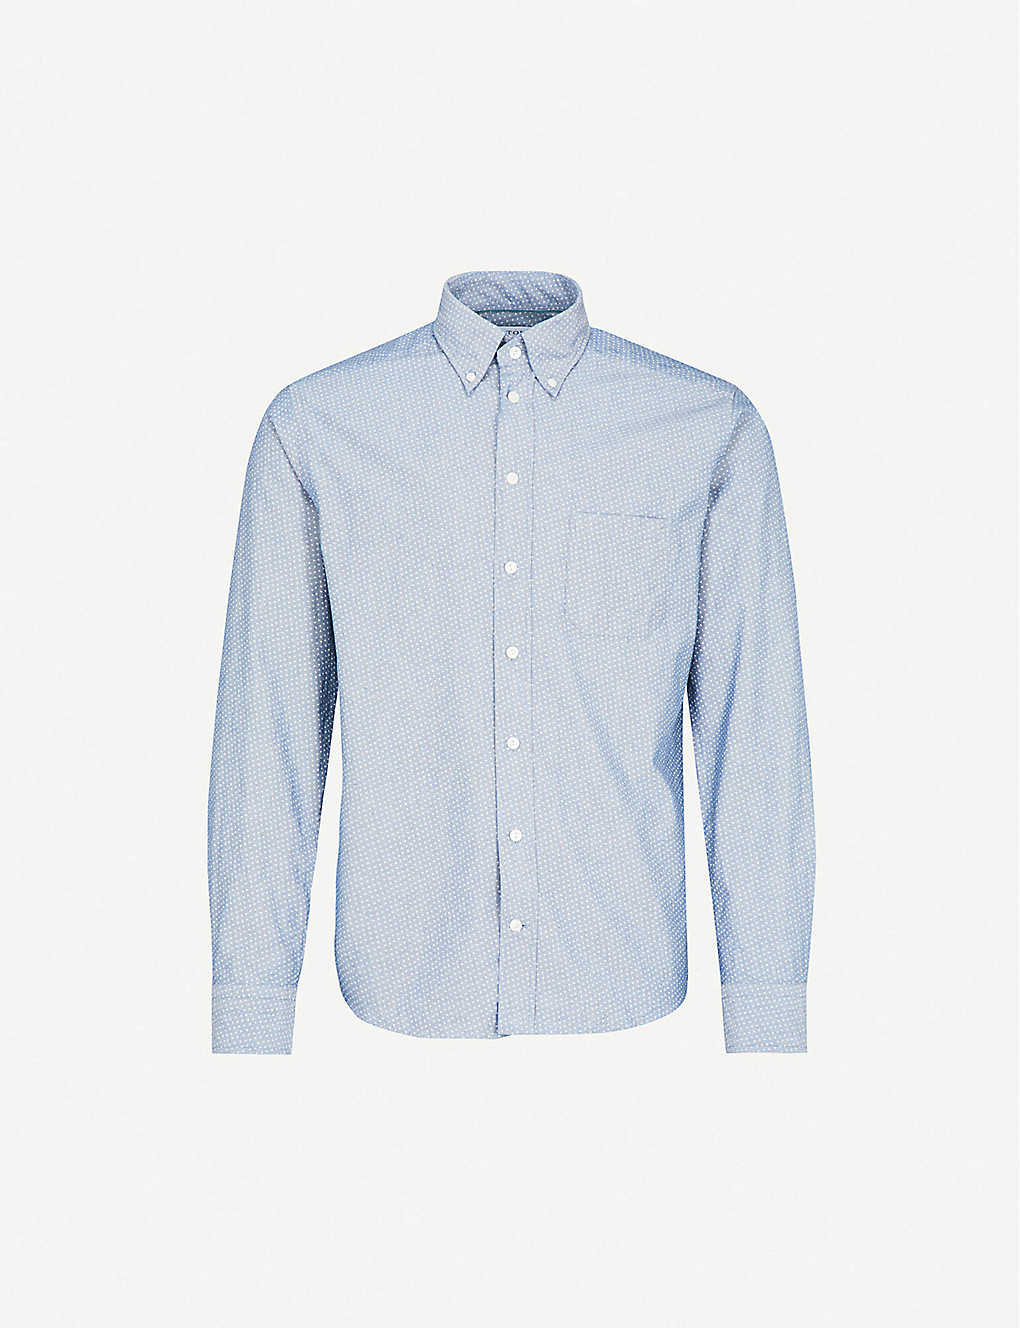 search for latest famous brand search for best Slim-fit cotton Oxford shirt